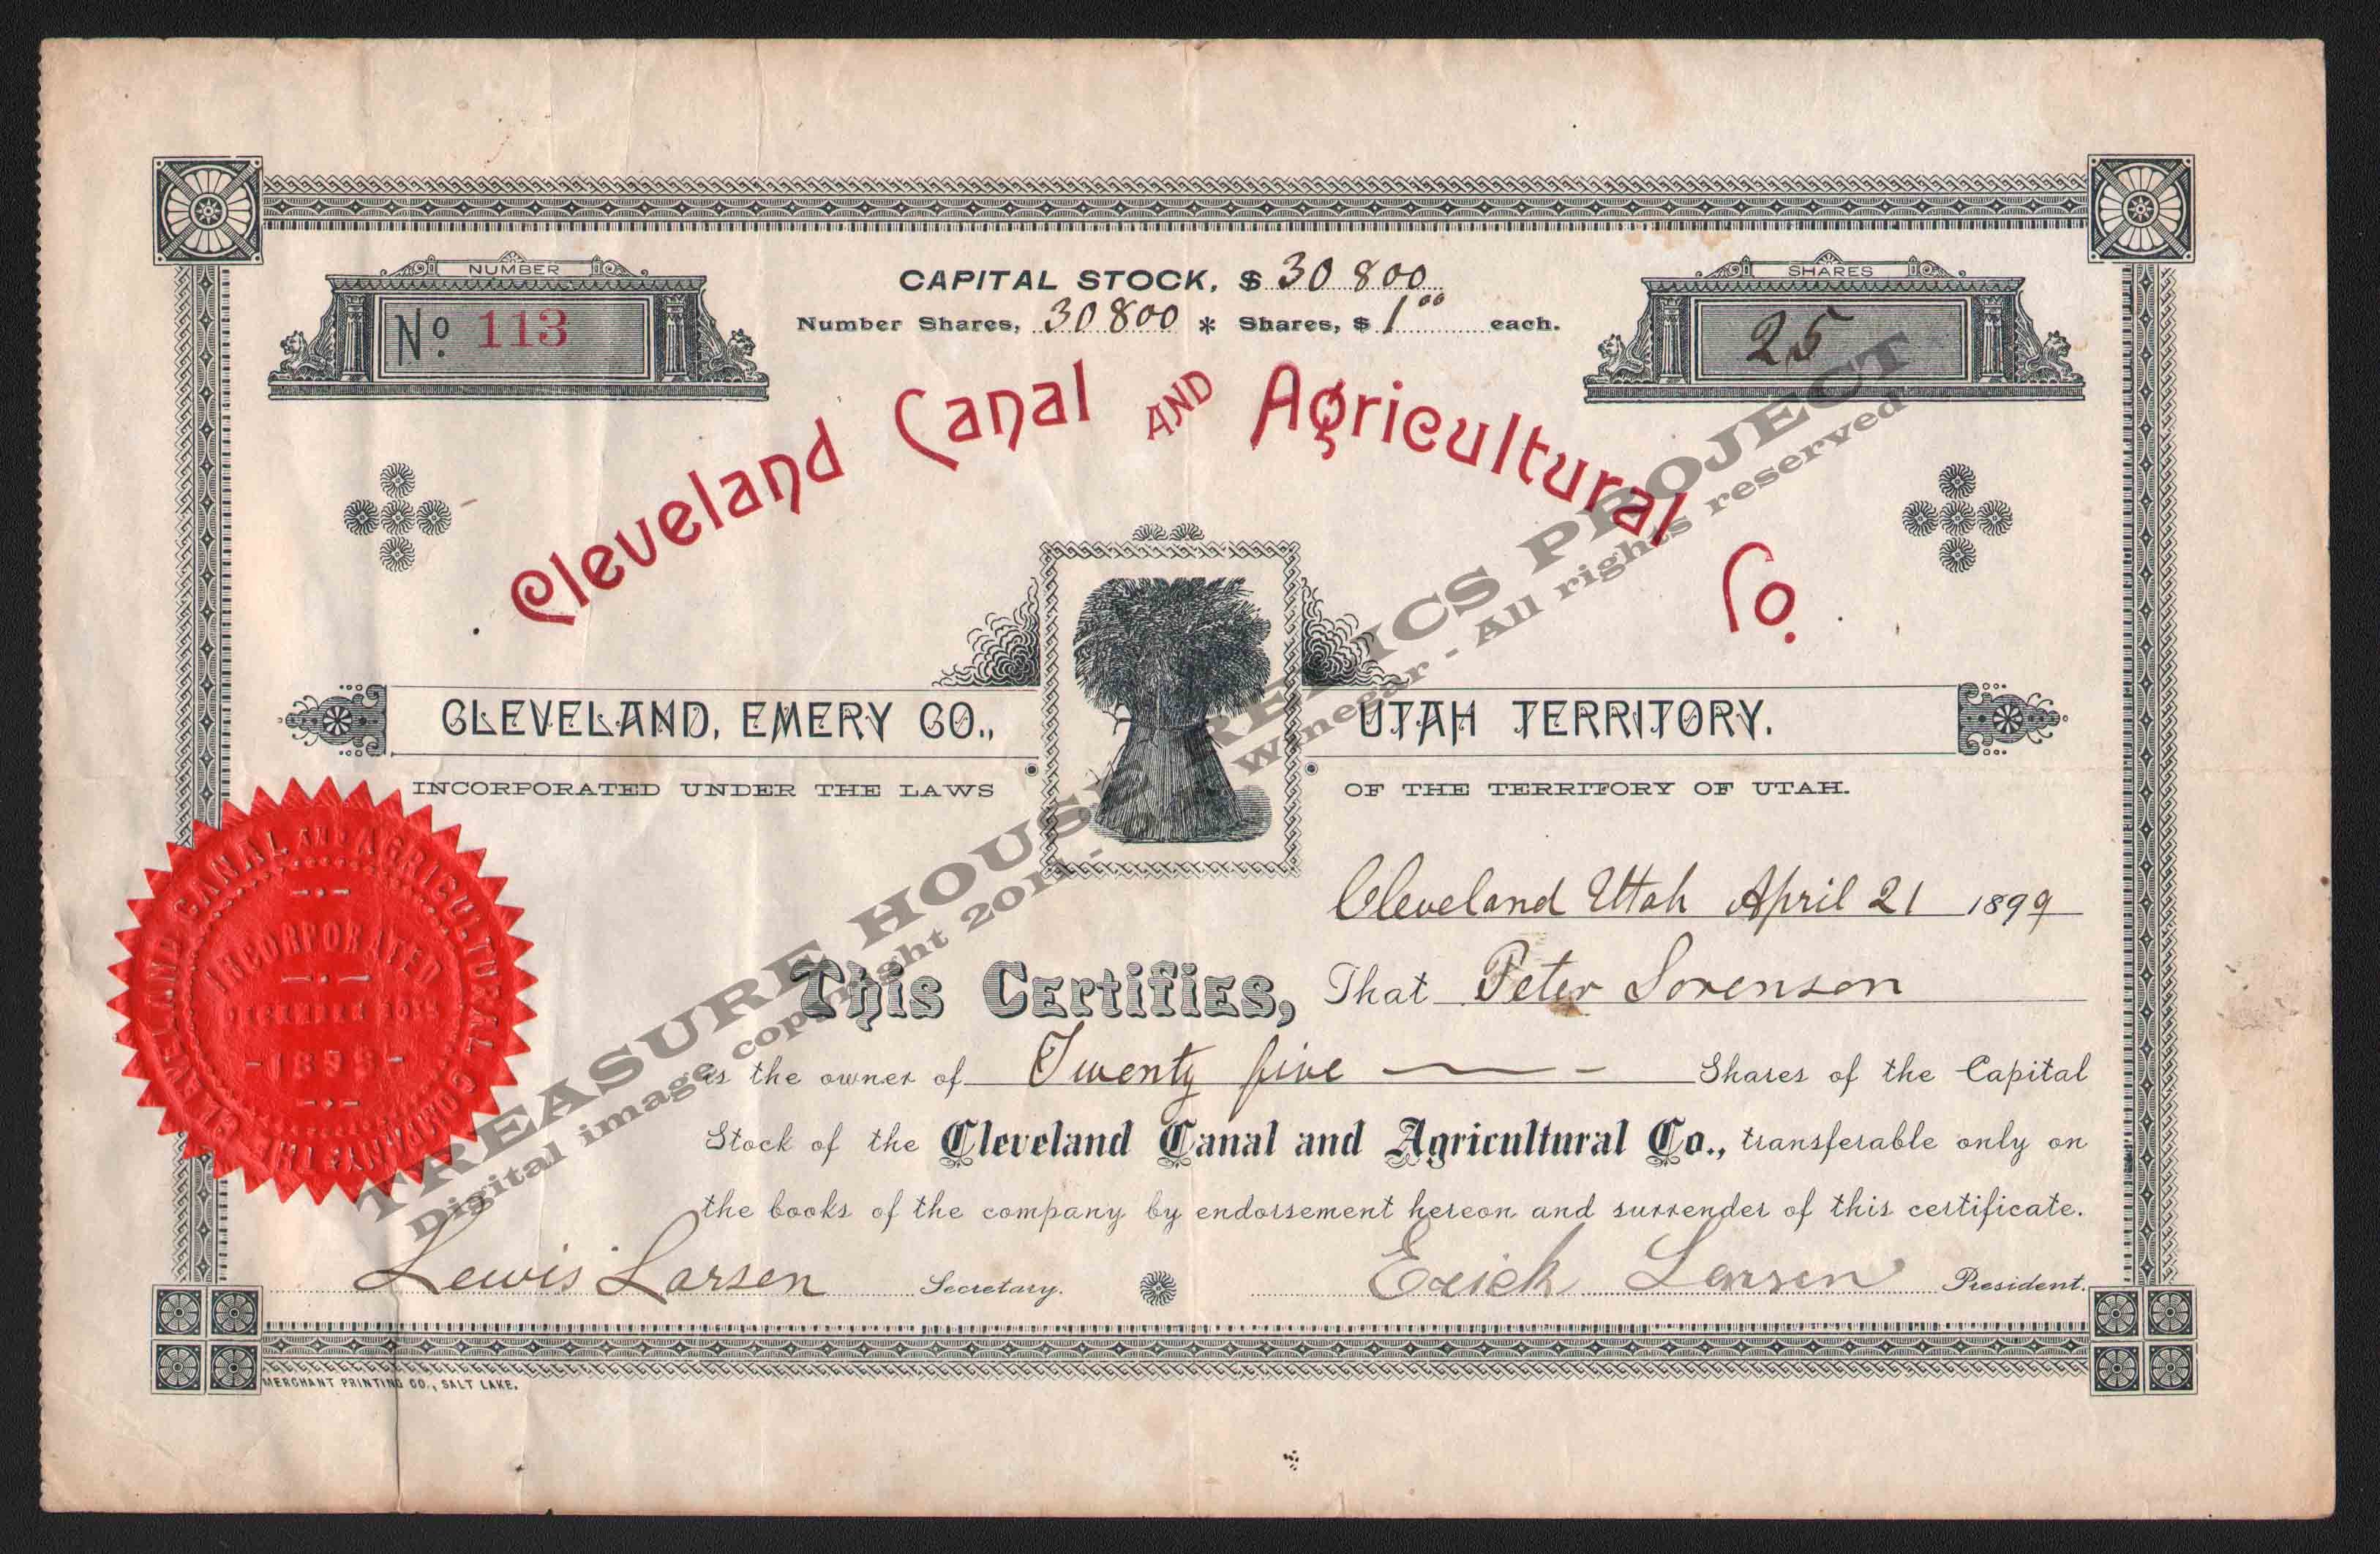 CLEVELAND_CANAL_AND_AG_CO_113_300_EMBOSS.jpg